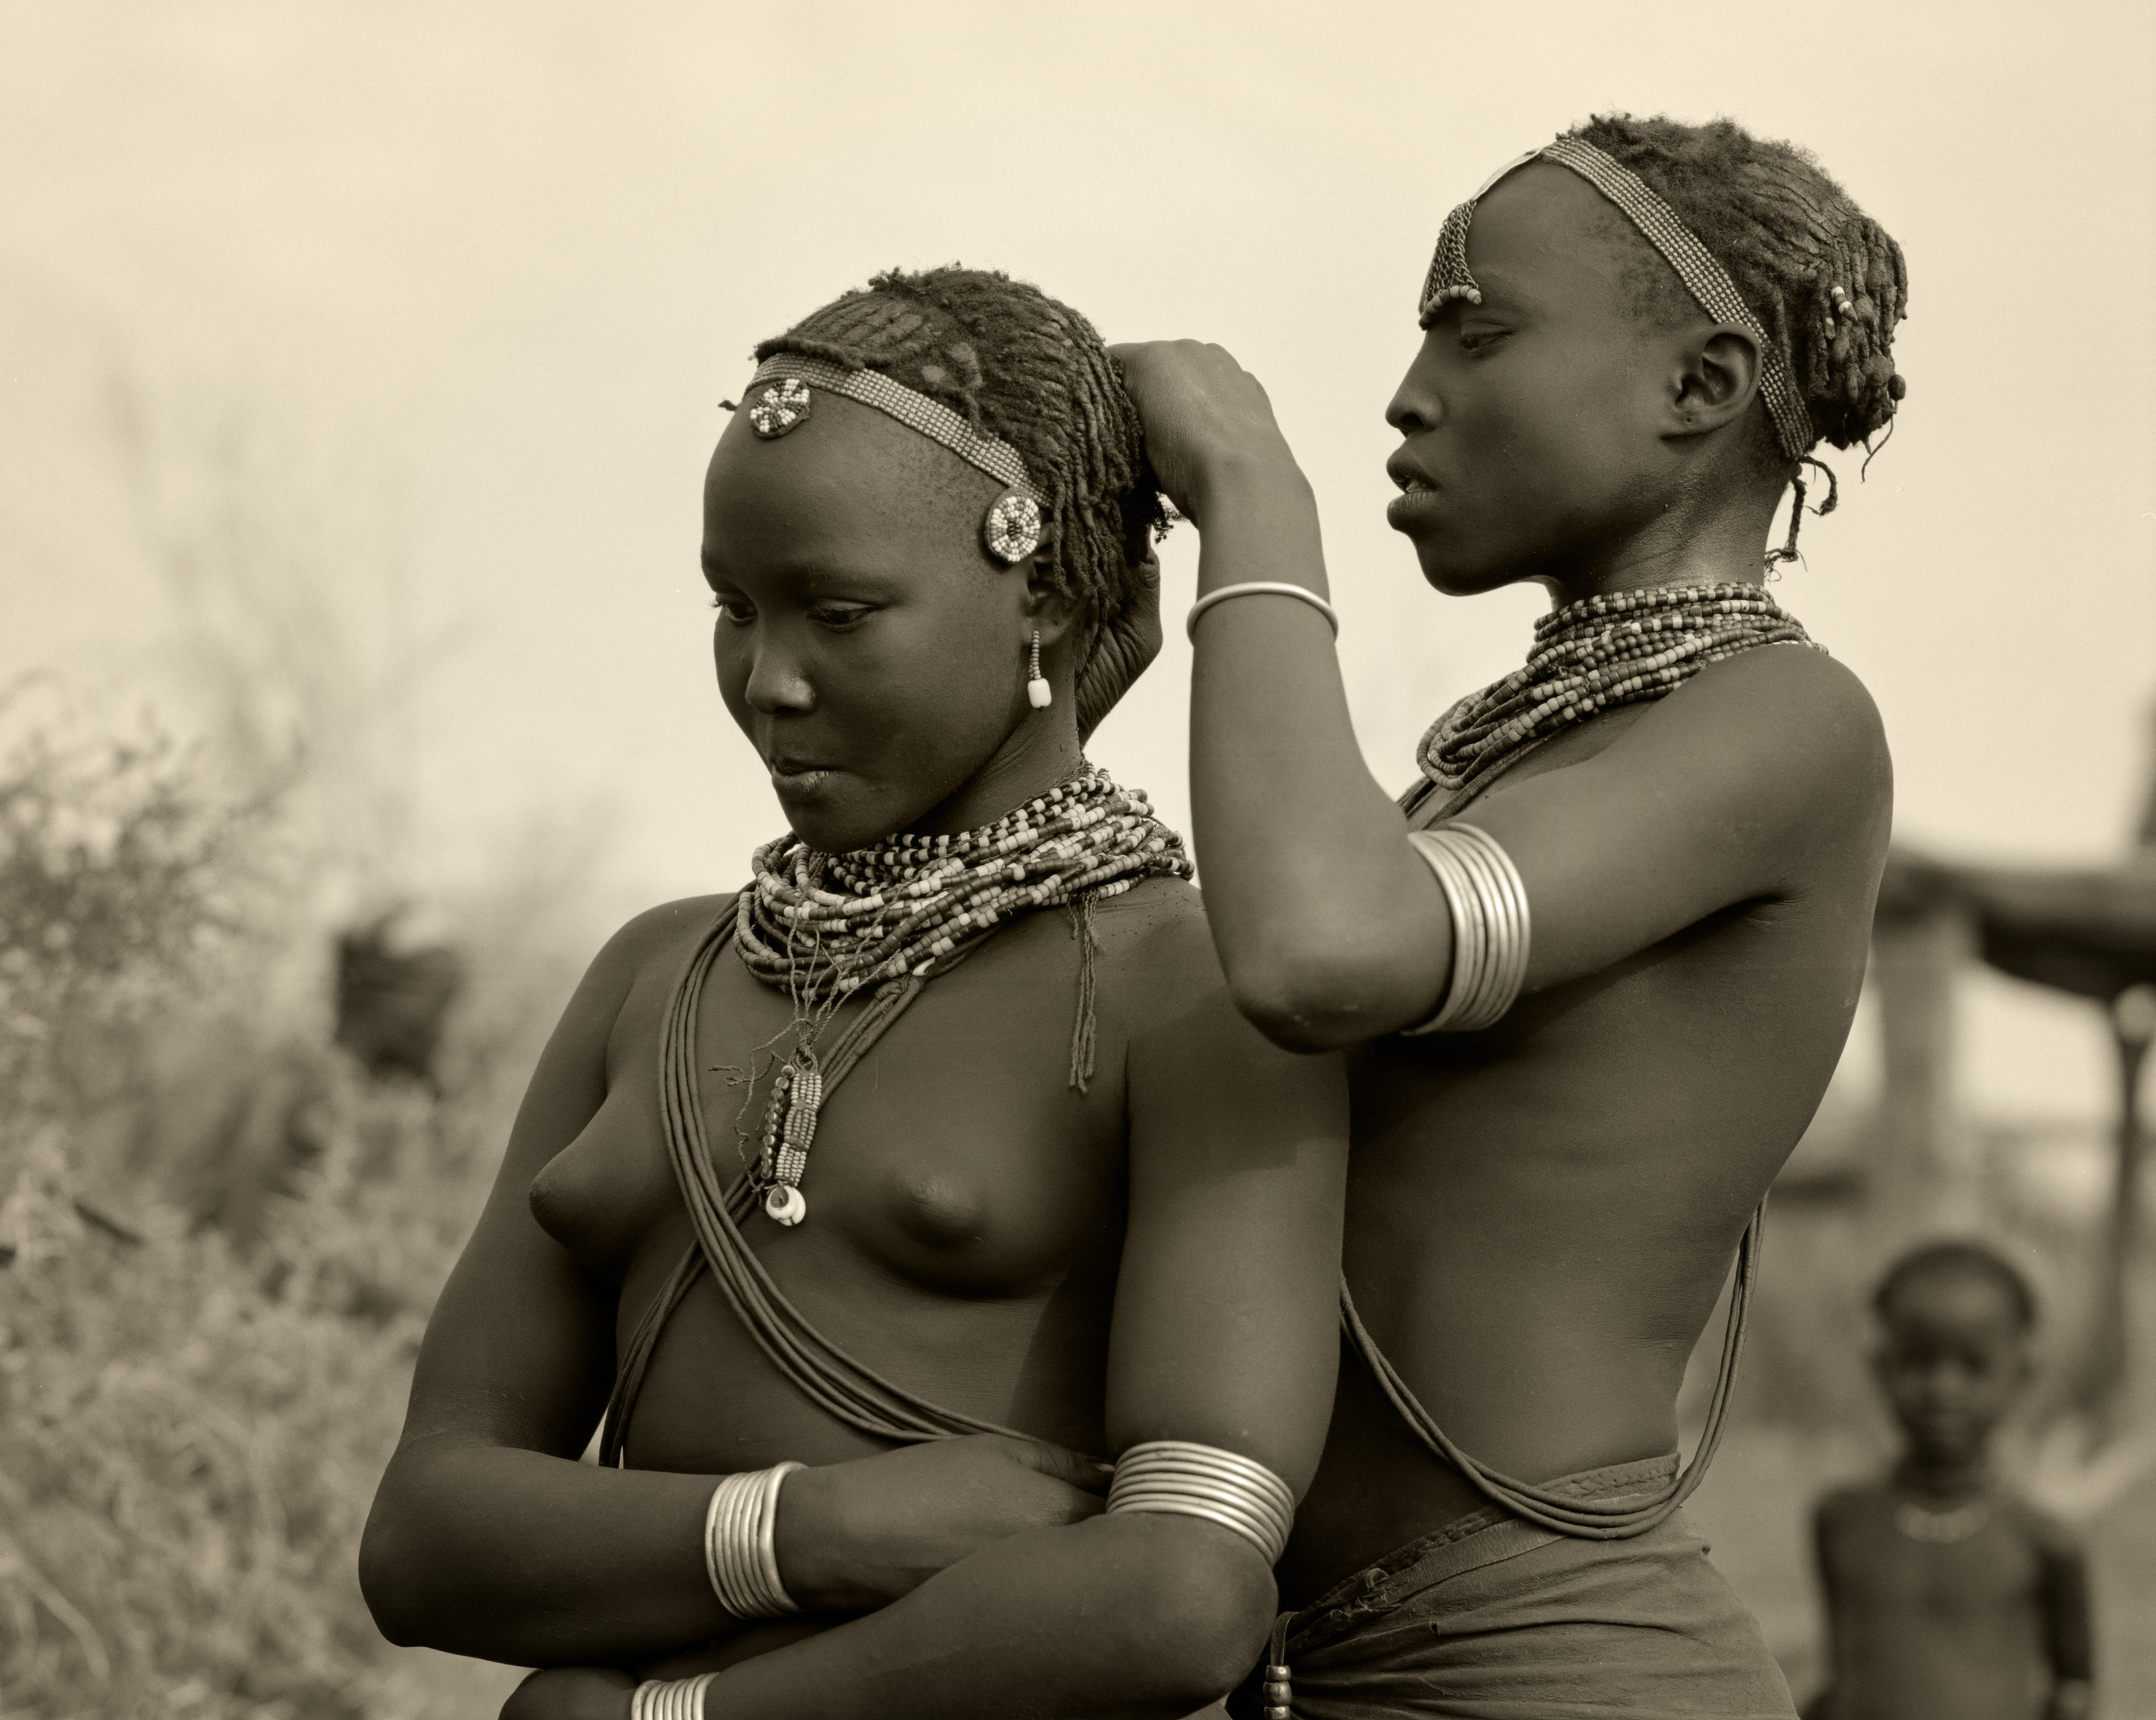 Ethiopia, Omo Delta. A Dassanech girl braids her sister's hair at her village in the Omo Delta